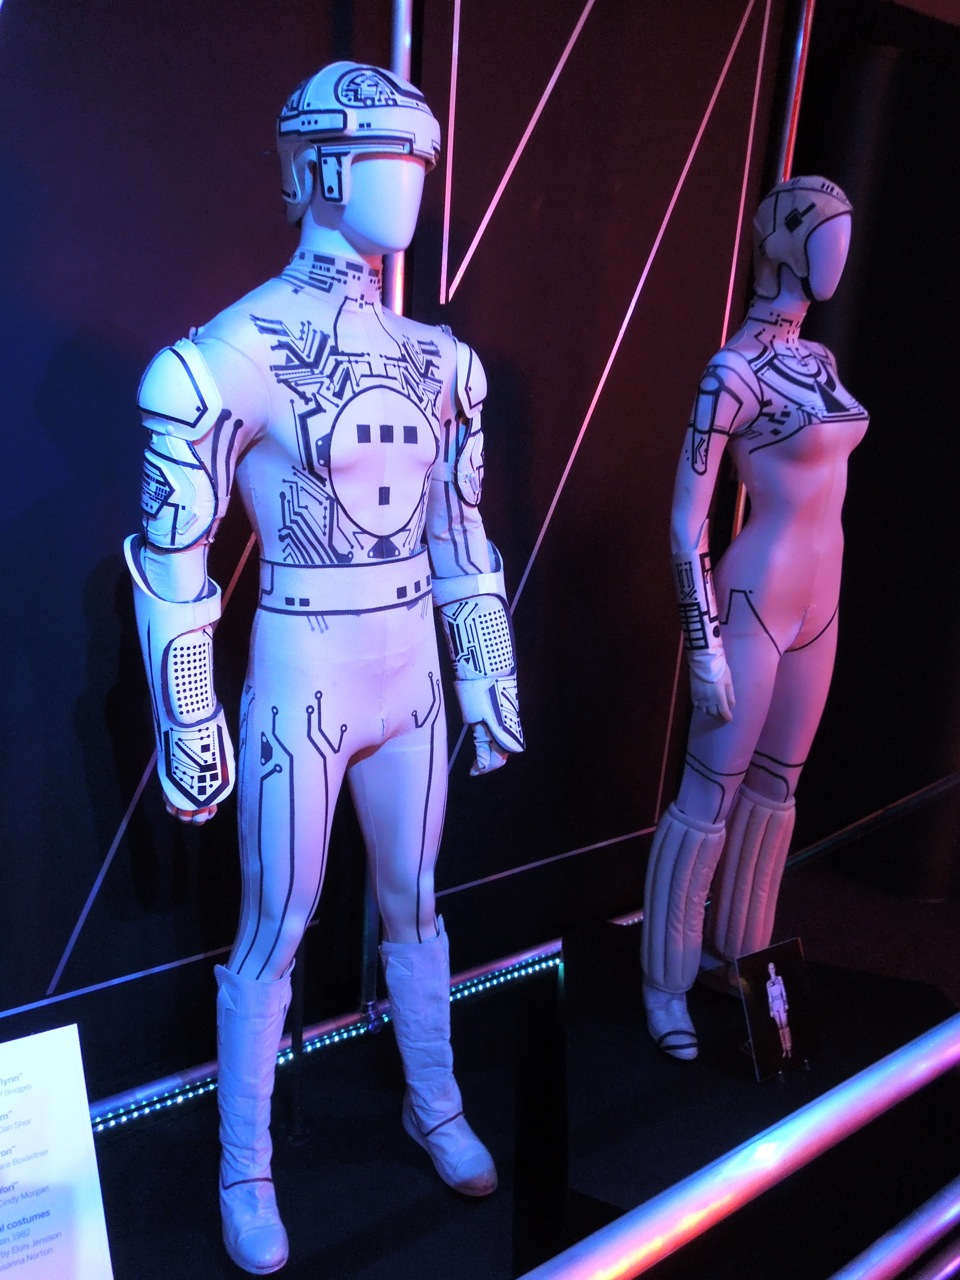 original 1982 tron movie costumes on display. Black Bedroom Furniture Sets. Home Design Ideas